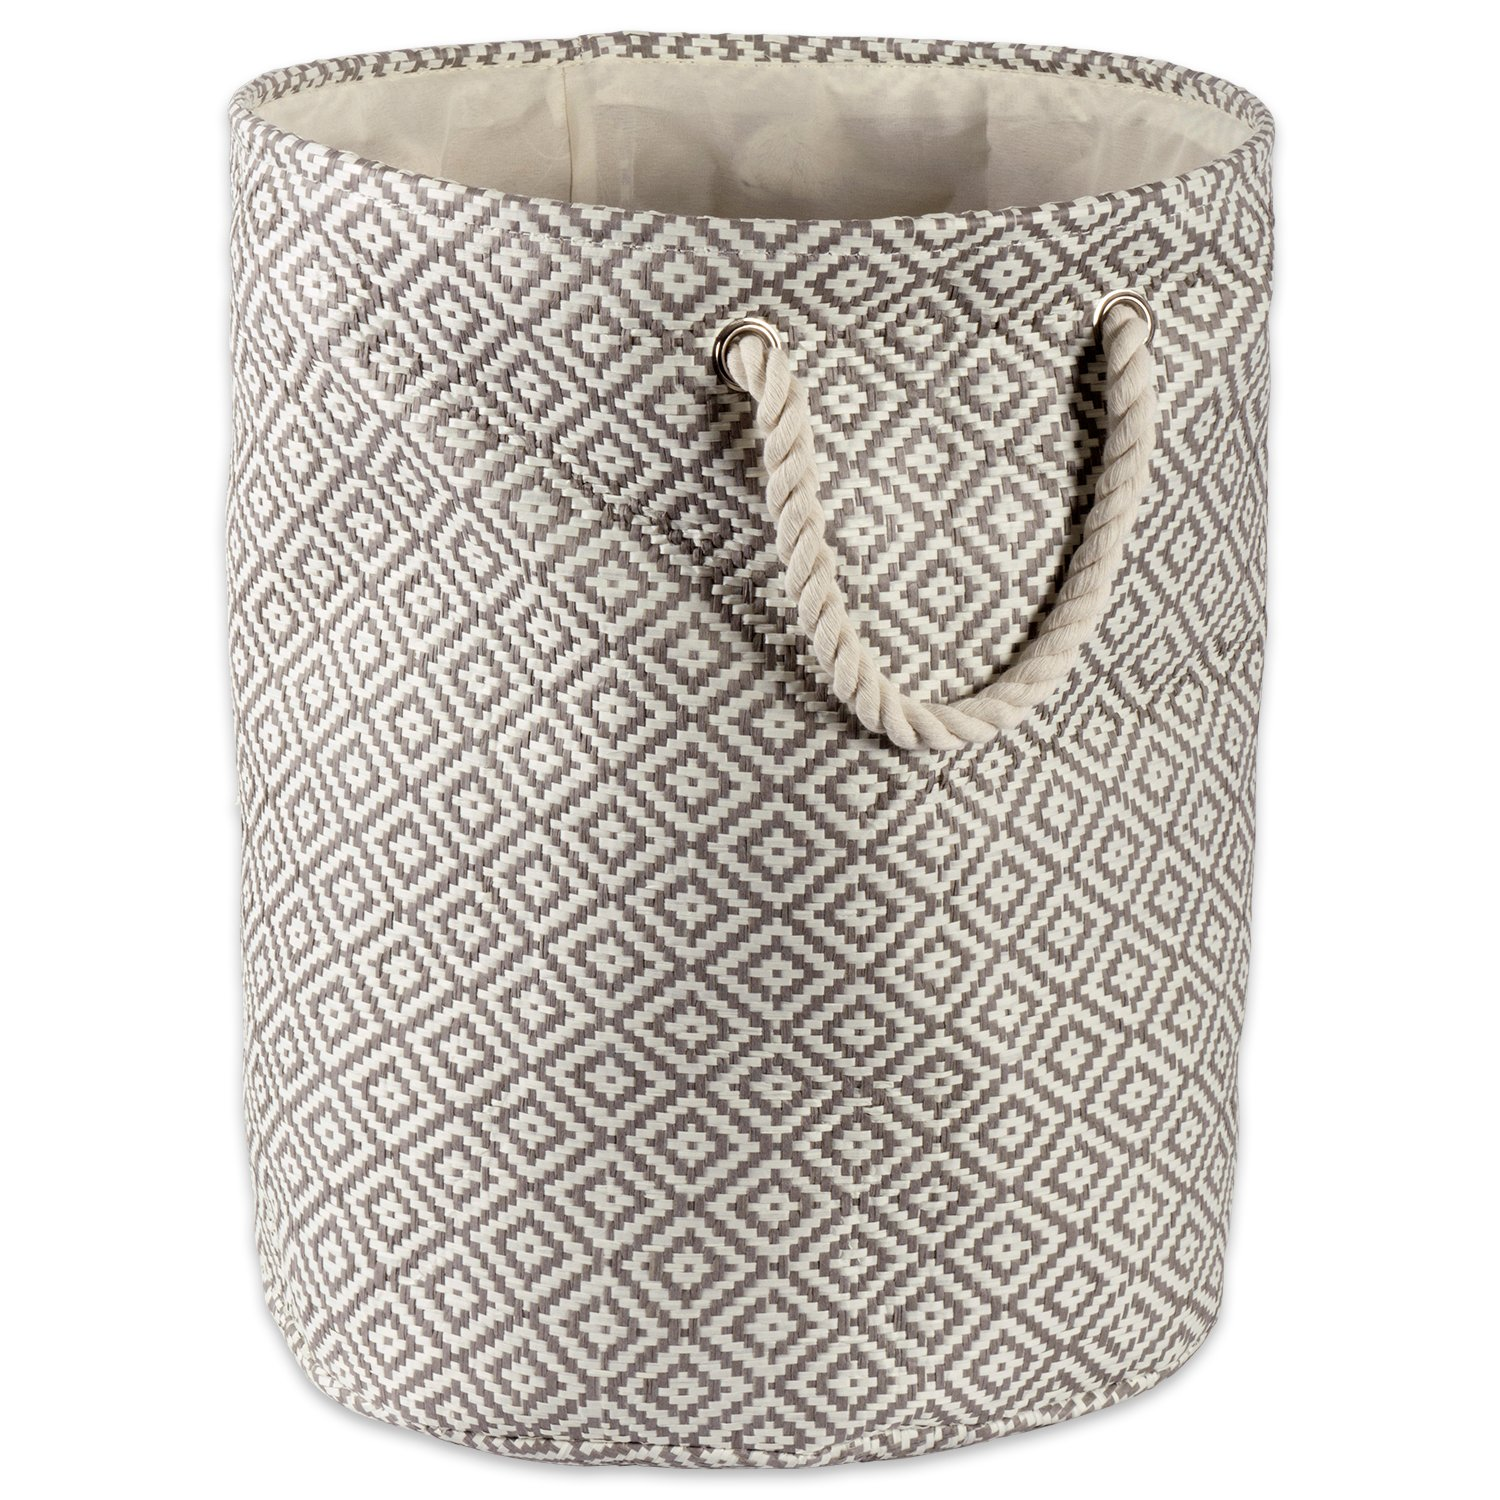 DII Woven Paper Basket or Bin, Collapsible & Convenient Organization & Storage Solution for Your Home (Large Round - 15x20) - Gray Geo Diamond